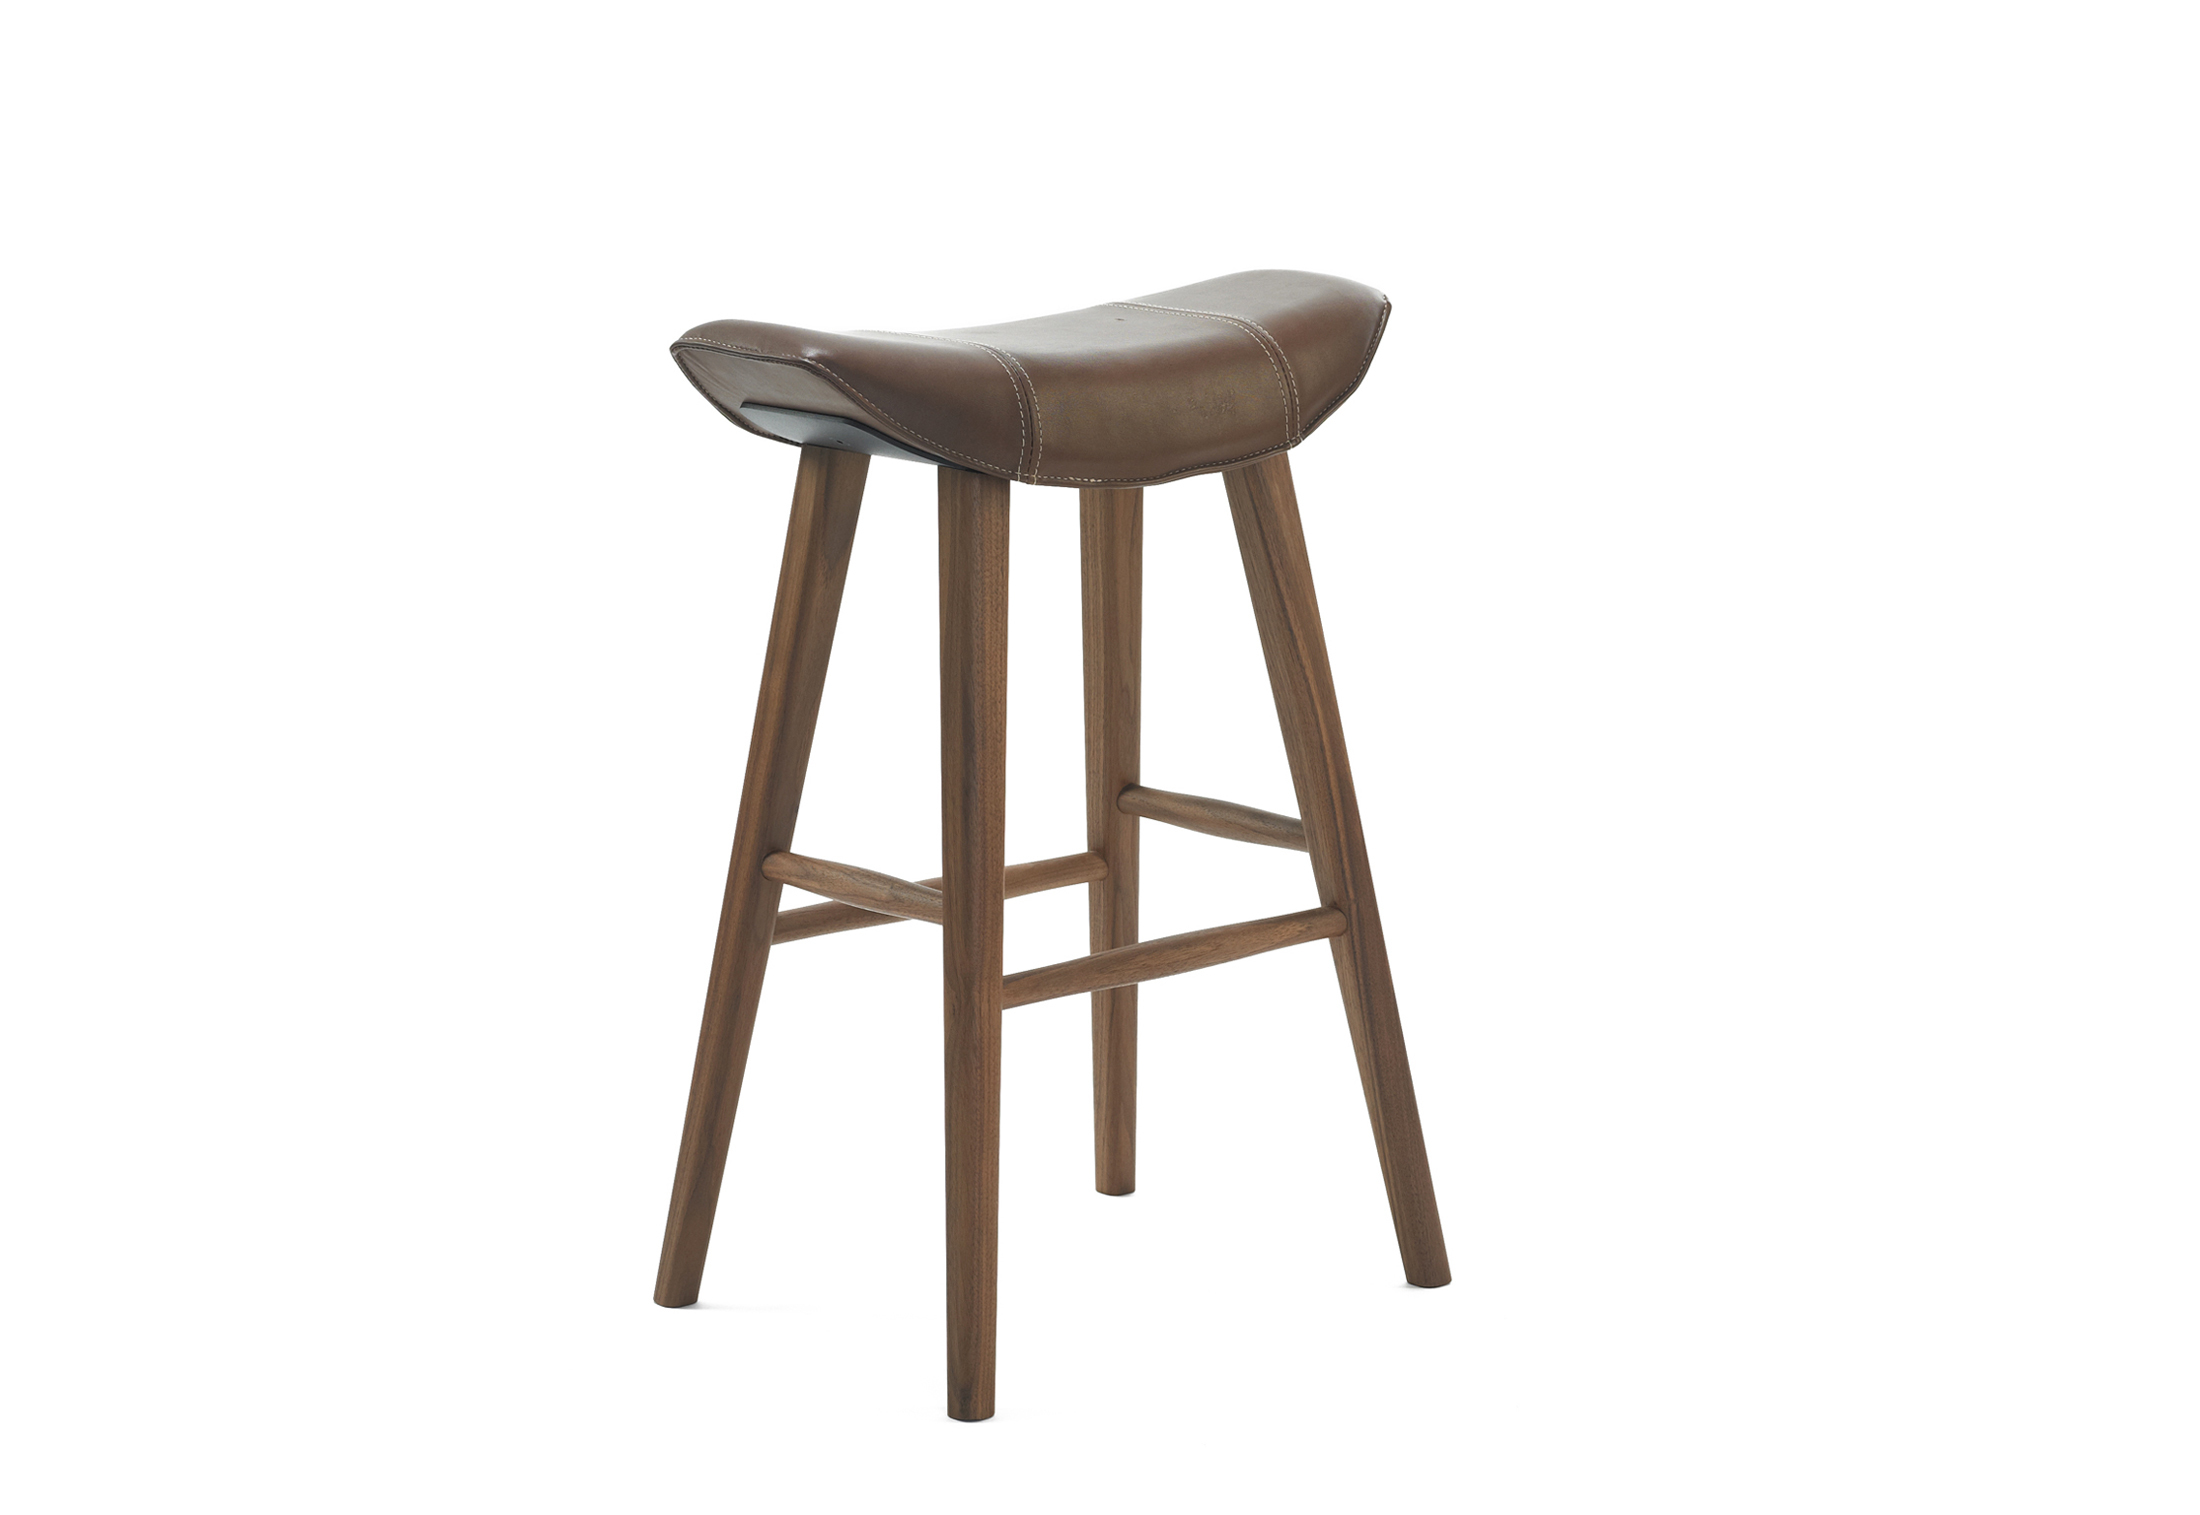 swivel apartment costco how barstools photo gumtree gold create bar to coast with barstool stools leather real stool awesome impressive your for kitchen